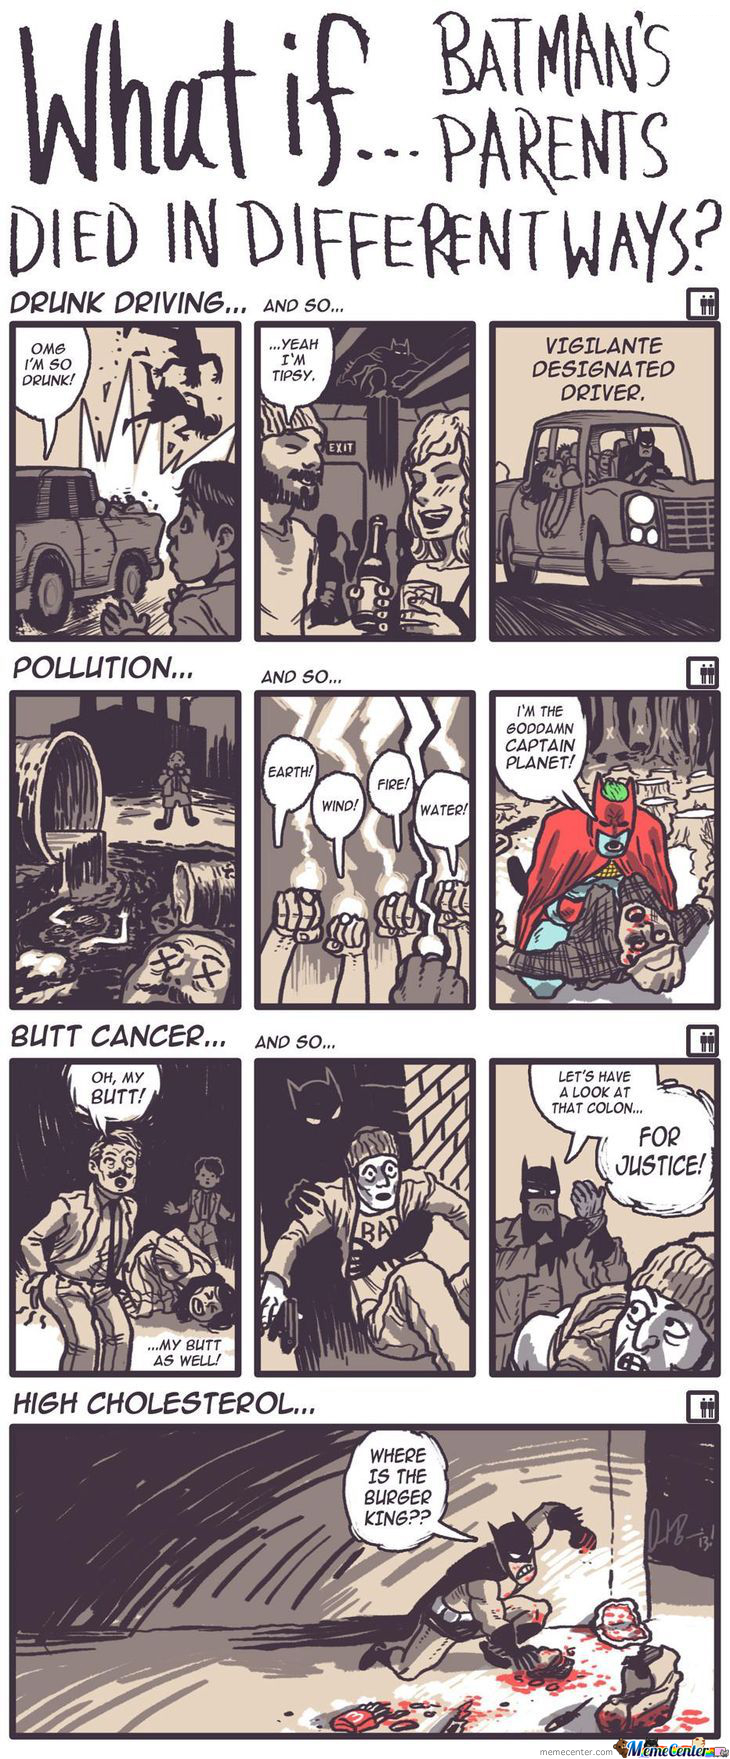 If The Parents Of Batman Had Died In Different Ways..